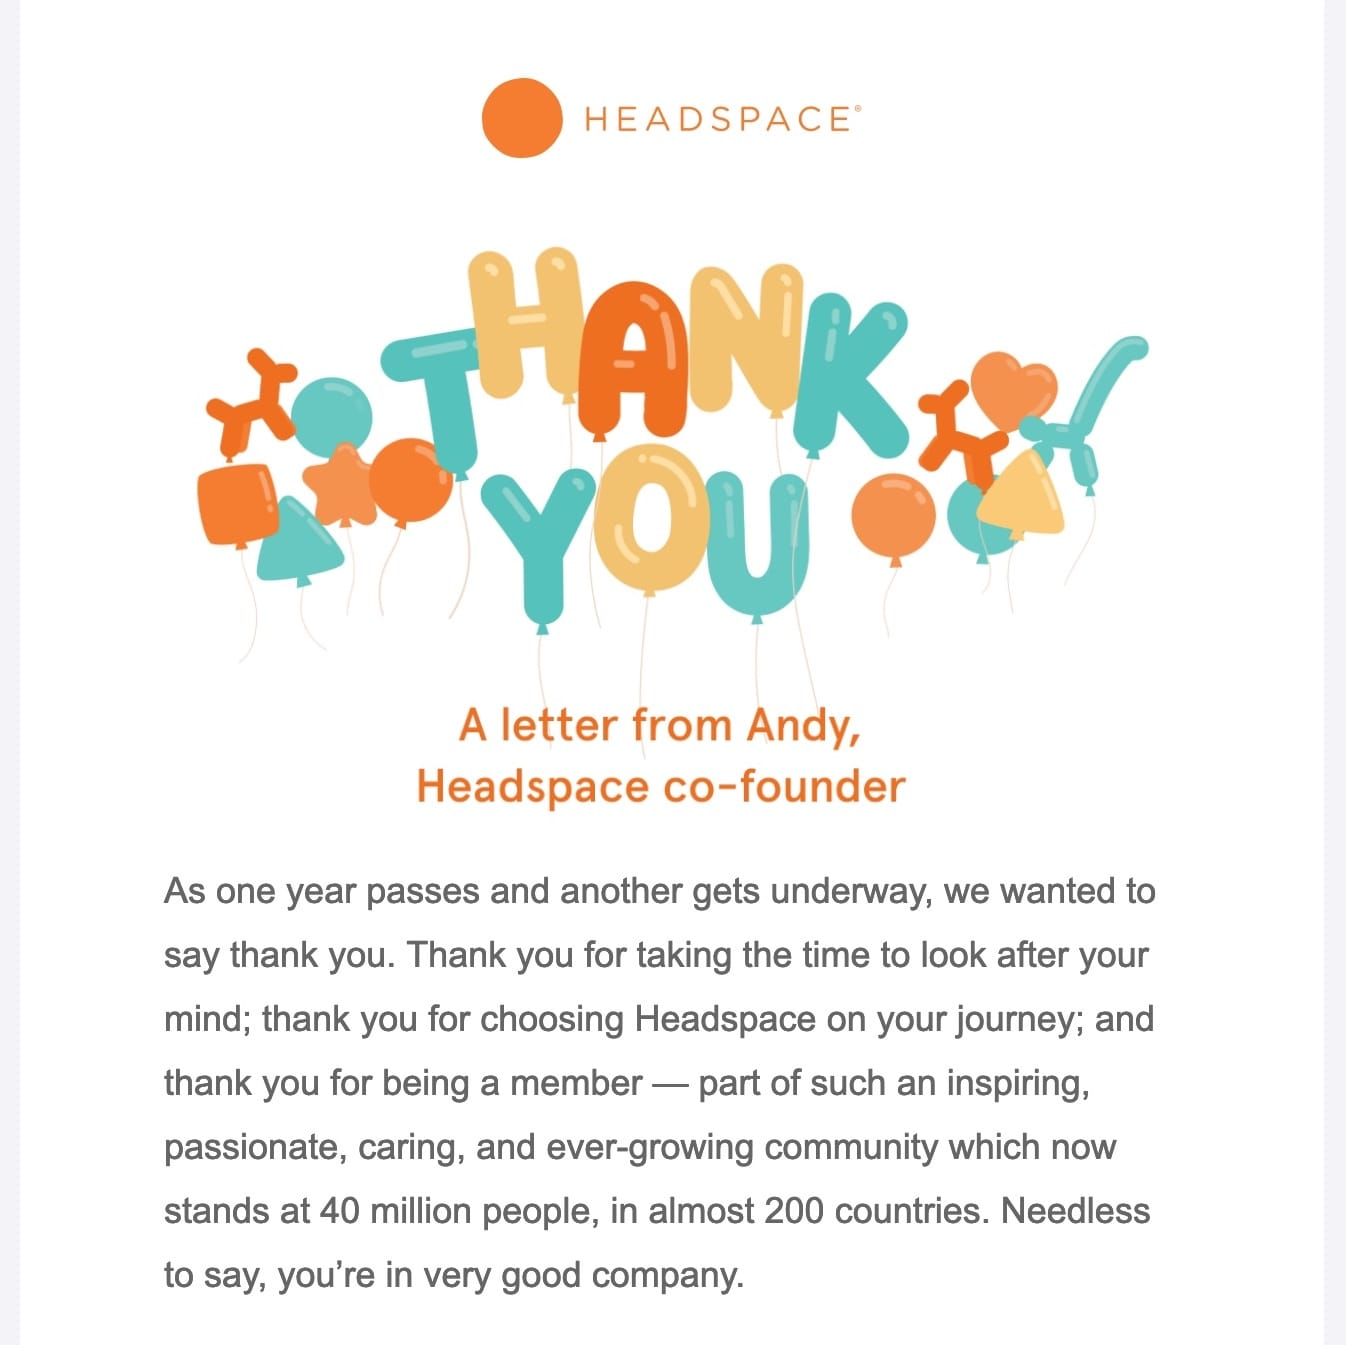 email-marketing-best-practices-headspace-thanks